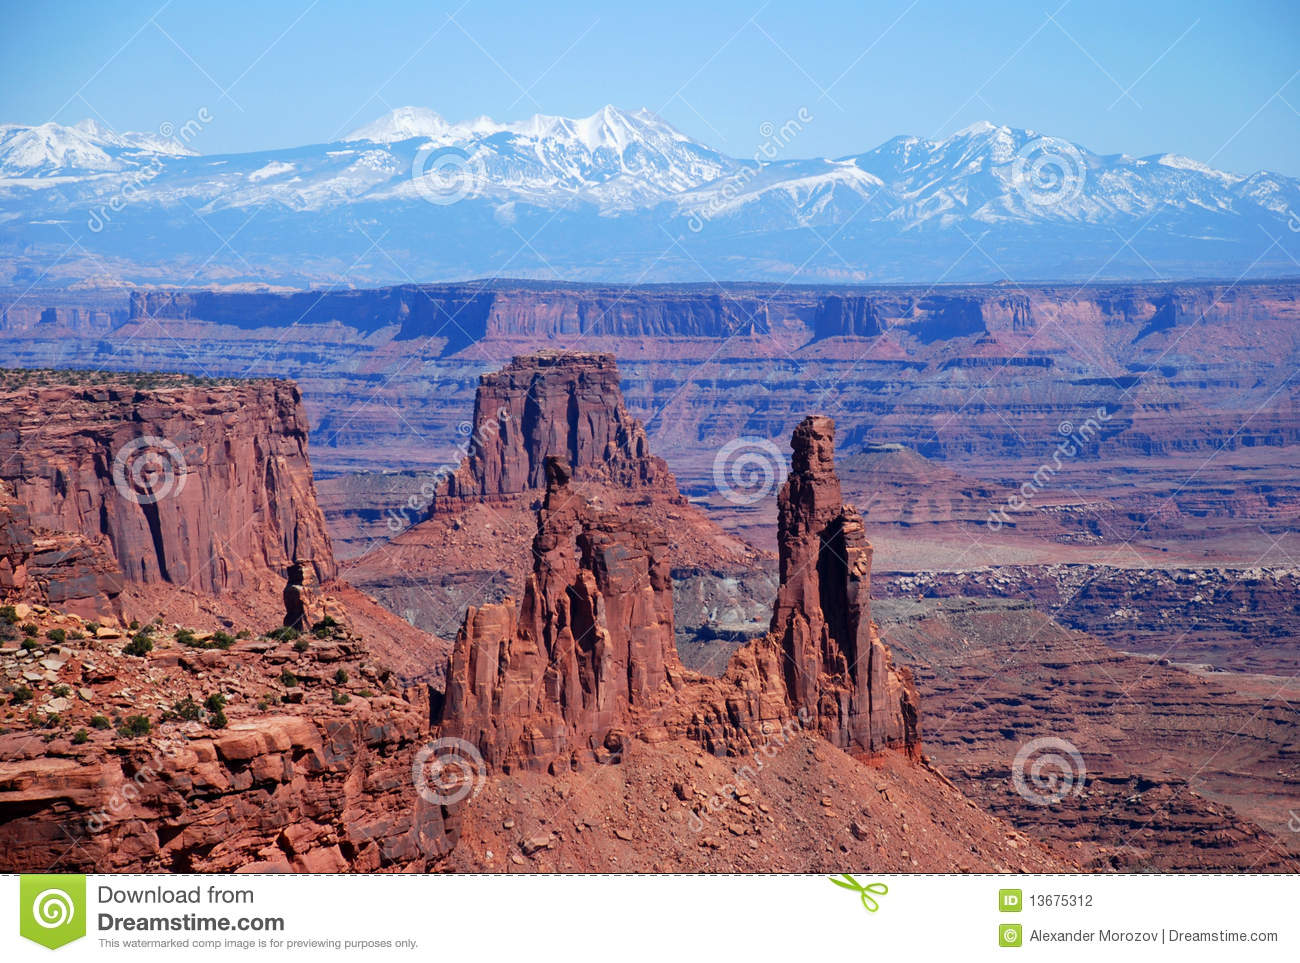 Canyonlands National Park clipart #1, Download drawings